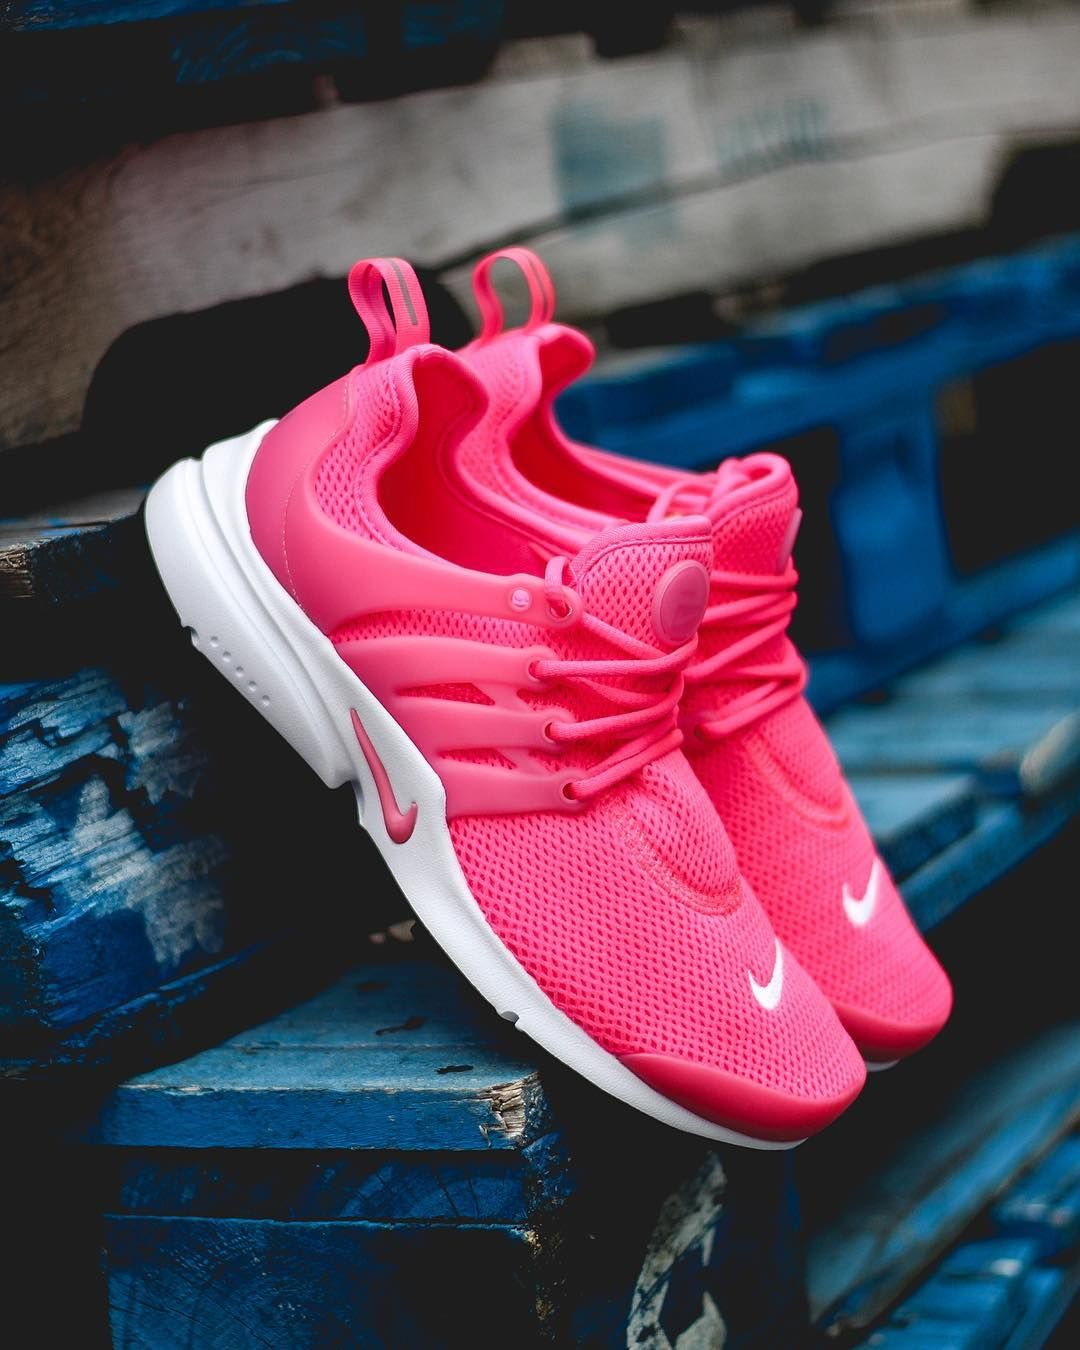 sale retailer 0fde3 a2657 Nike Air Presto Hyper Pink  mynewkicks. Find this Pin and more ...